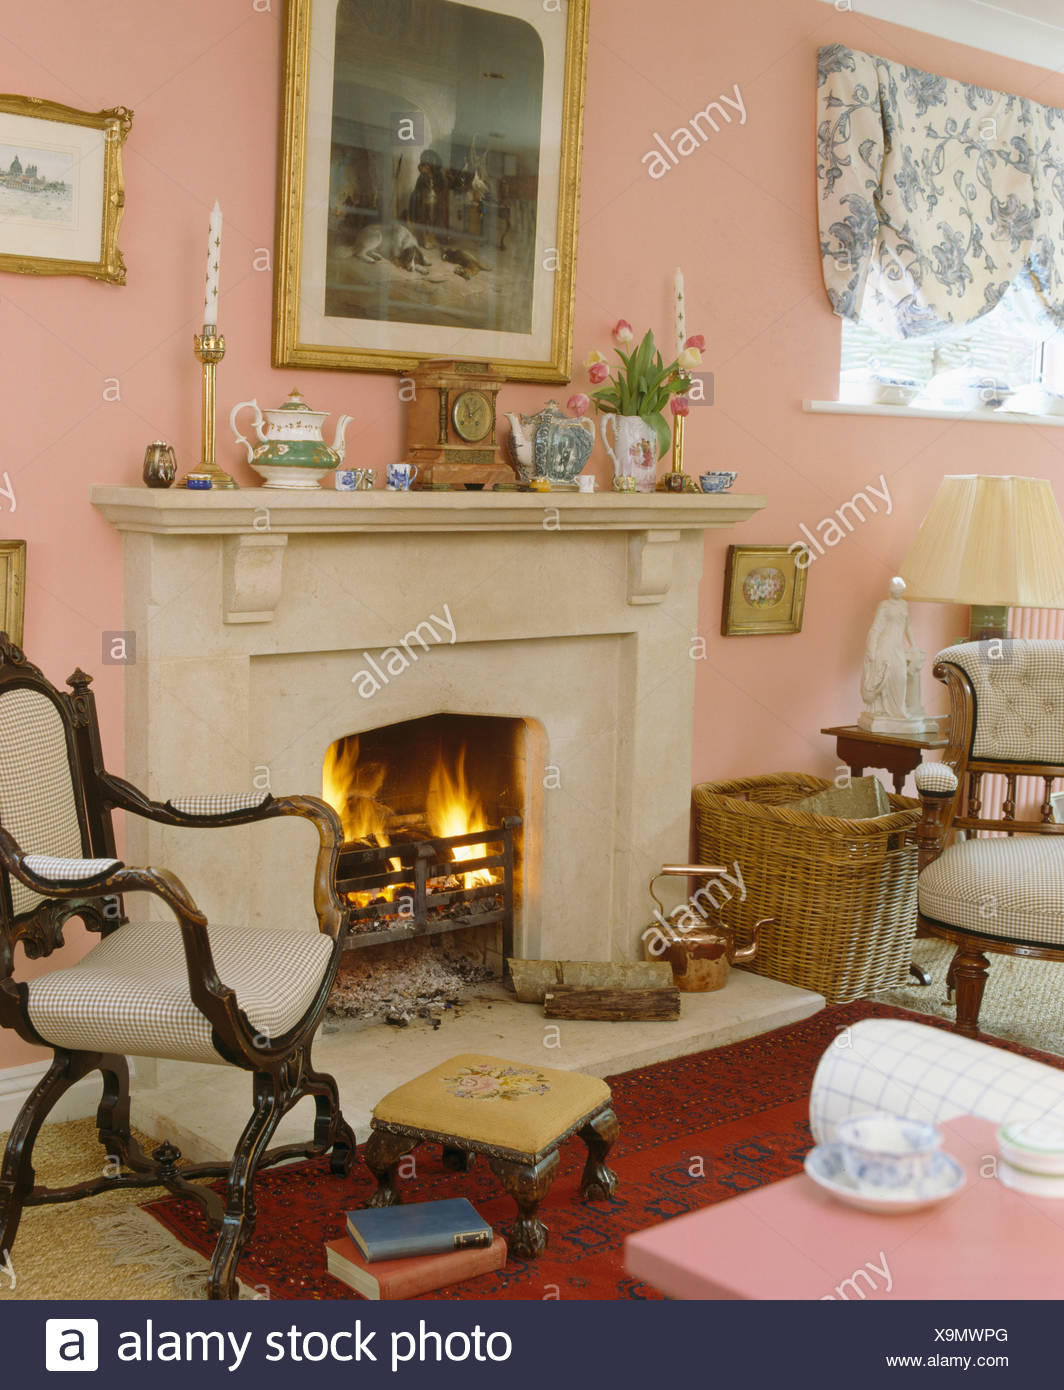 Ordinaire Picture On Wall Above Fireplace With Lighted Fire In Peach Living Room With  Cream Upholstered Antique Chairs